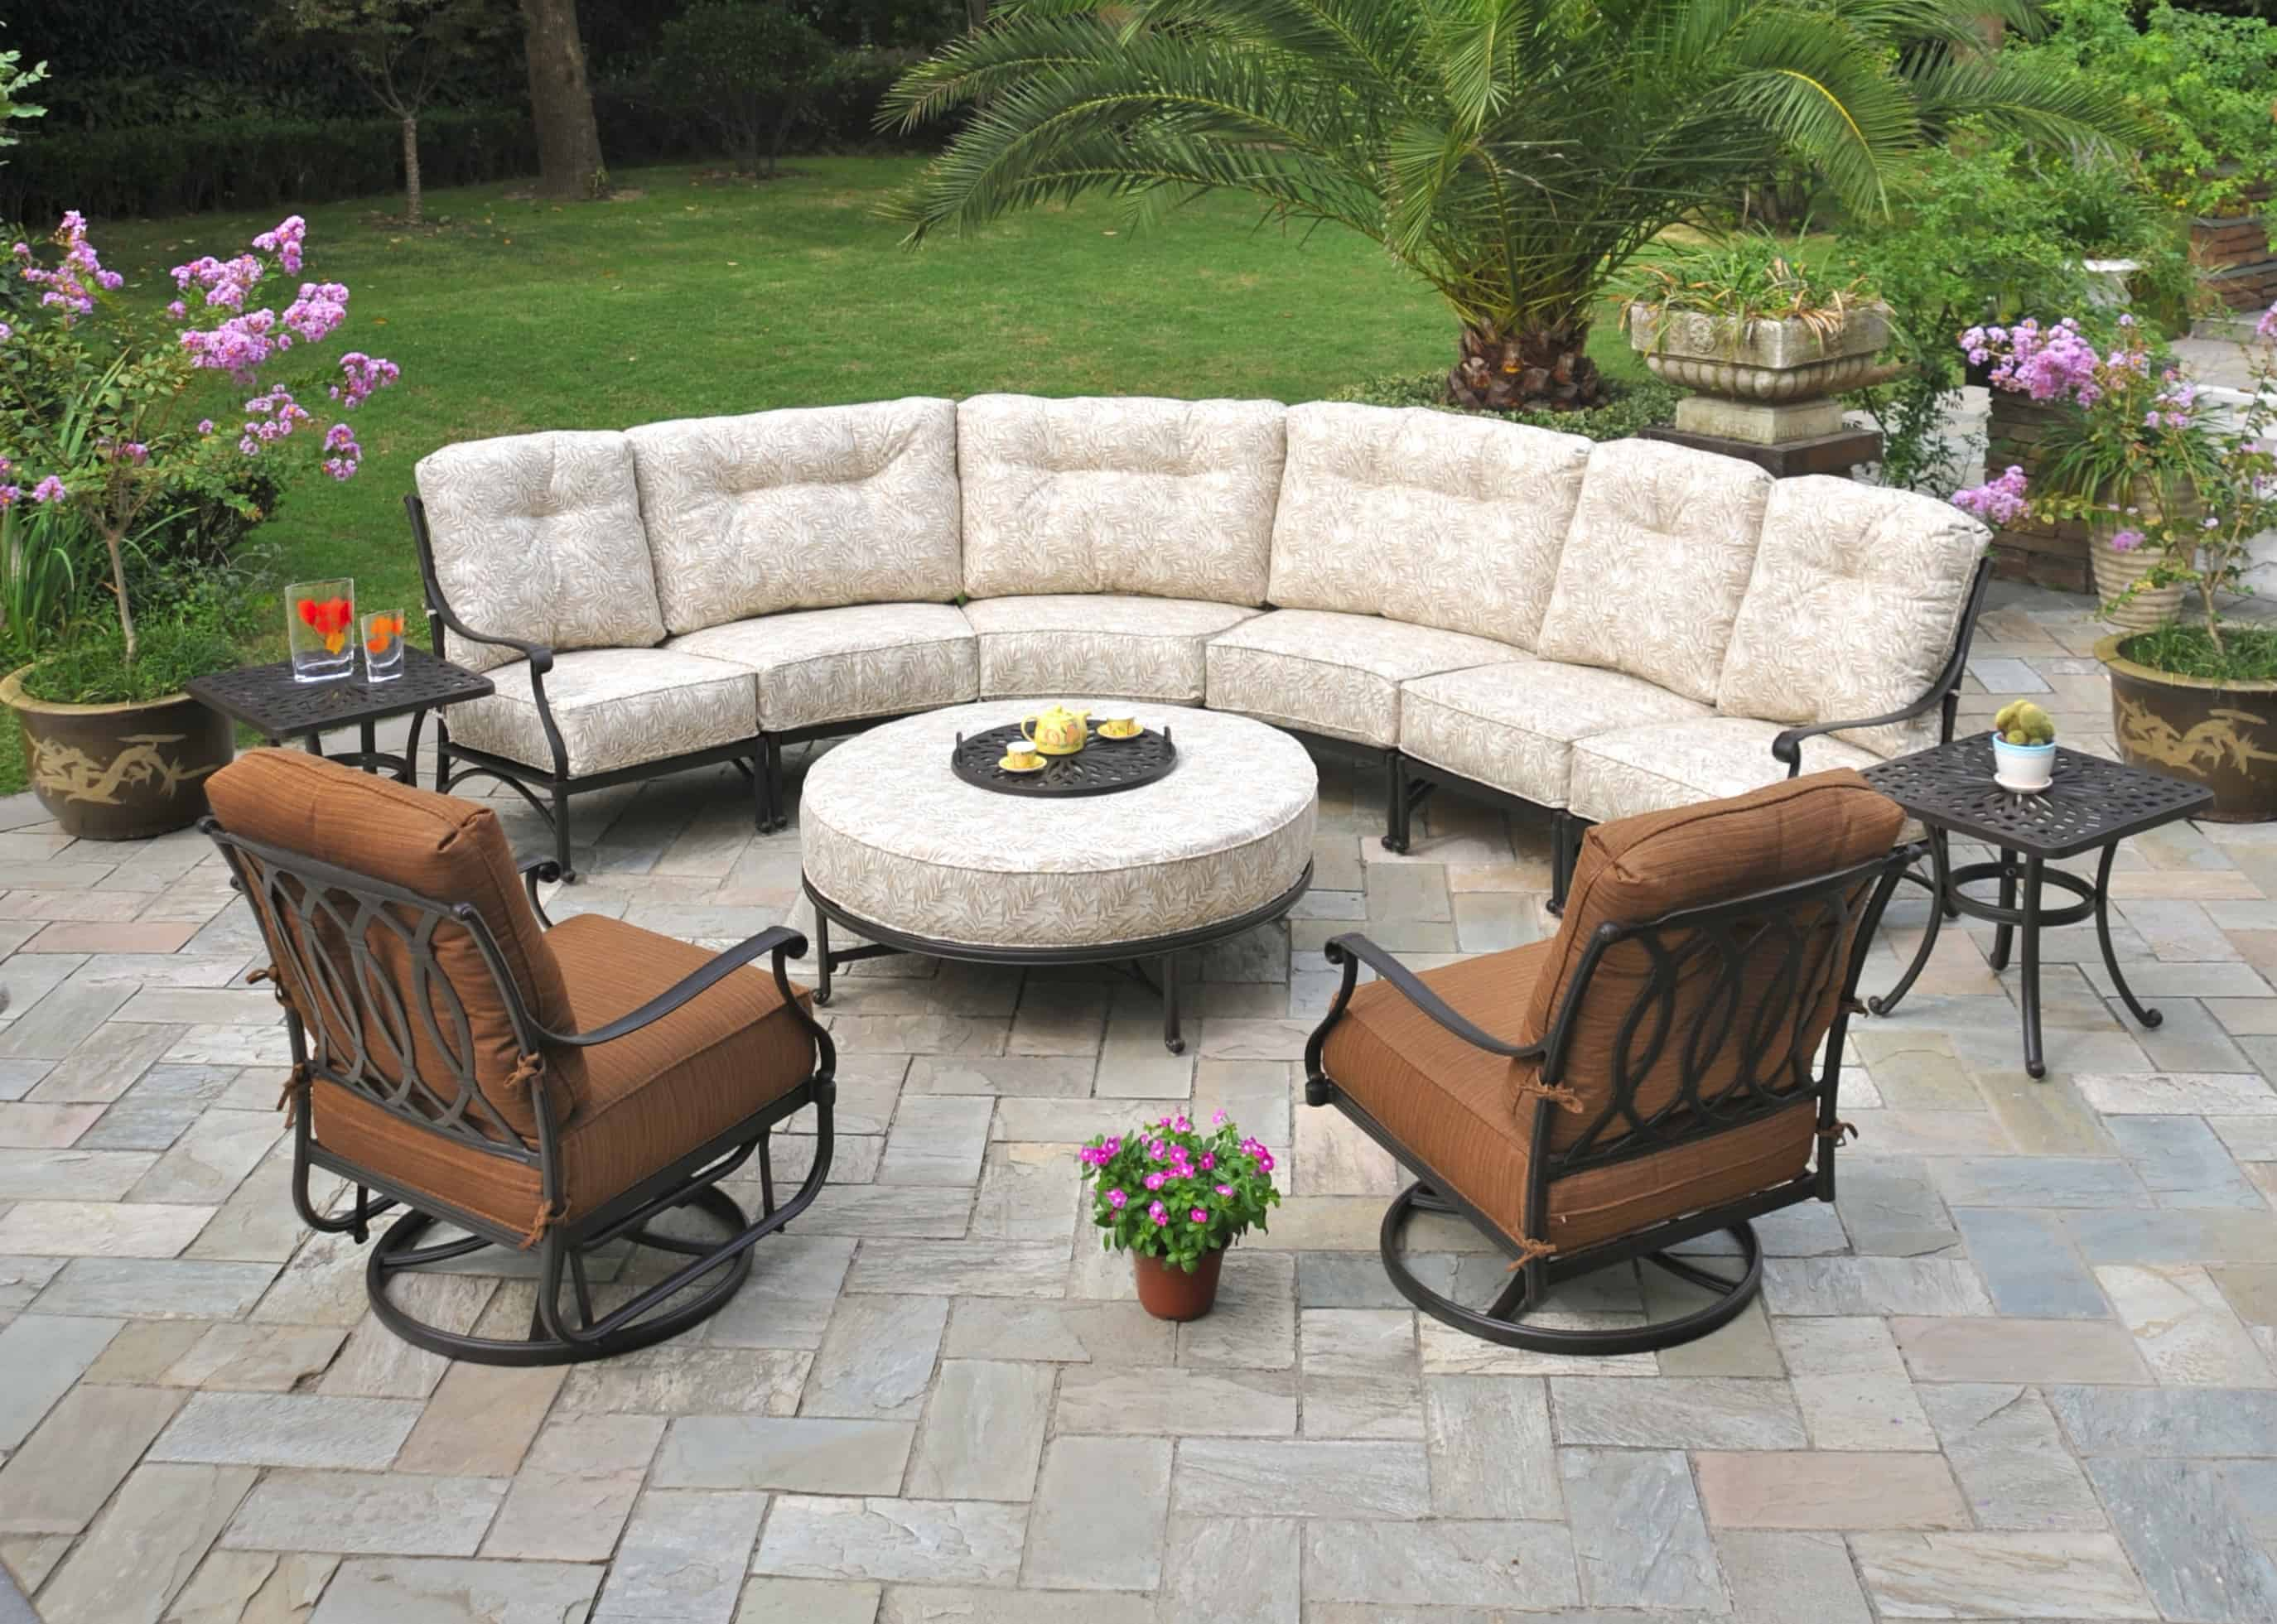 High quality patio furniture can be a big investment but it can also offer huge rewards comfortable long lasting furniture will greatly enhance your